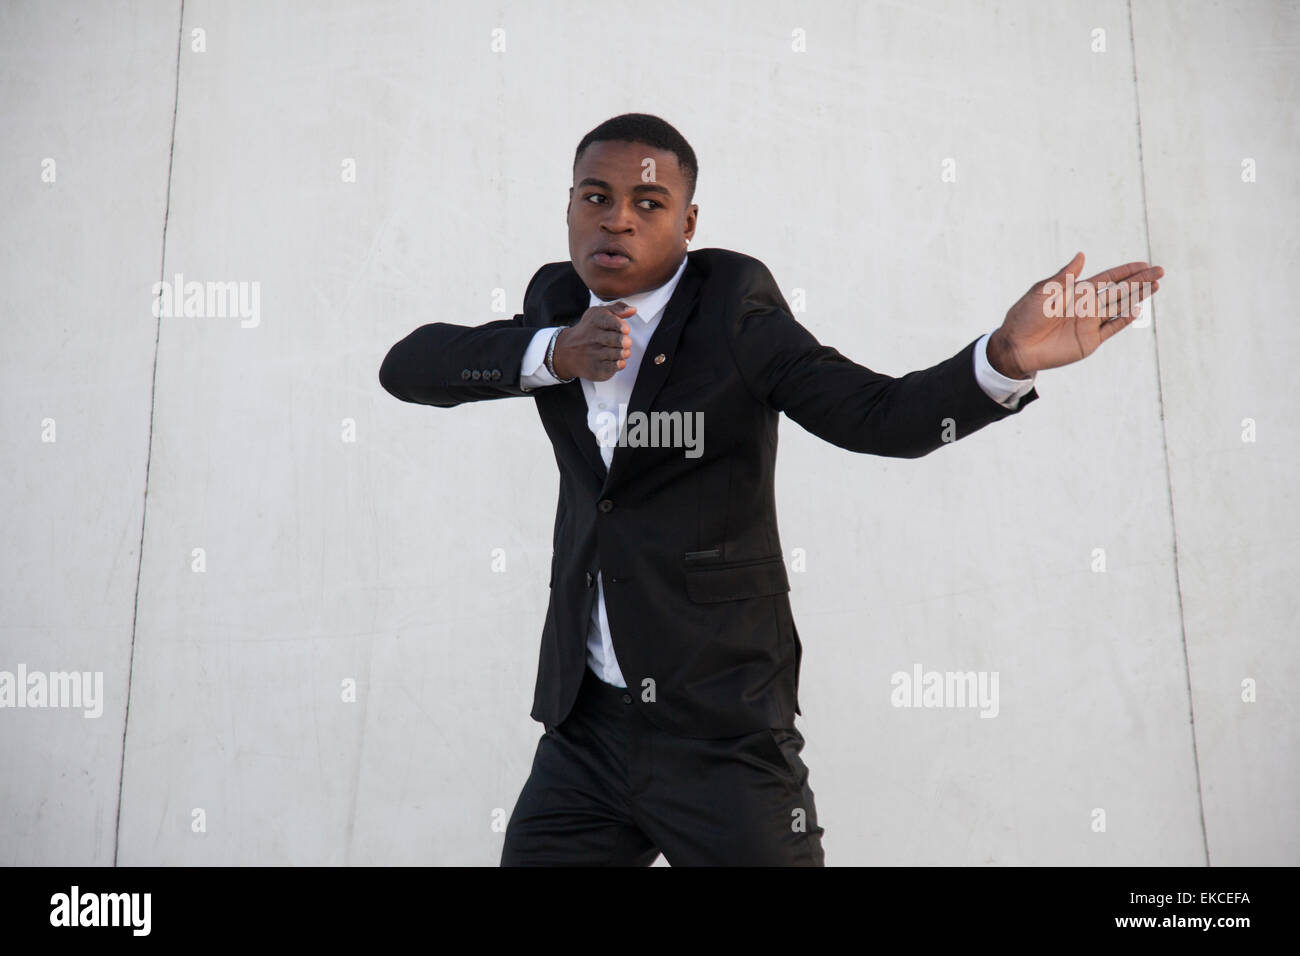 Young man in a suit street dancing - Stock Image